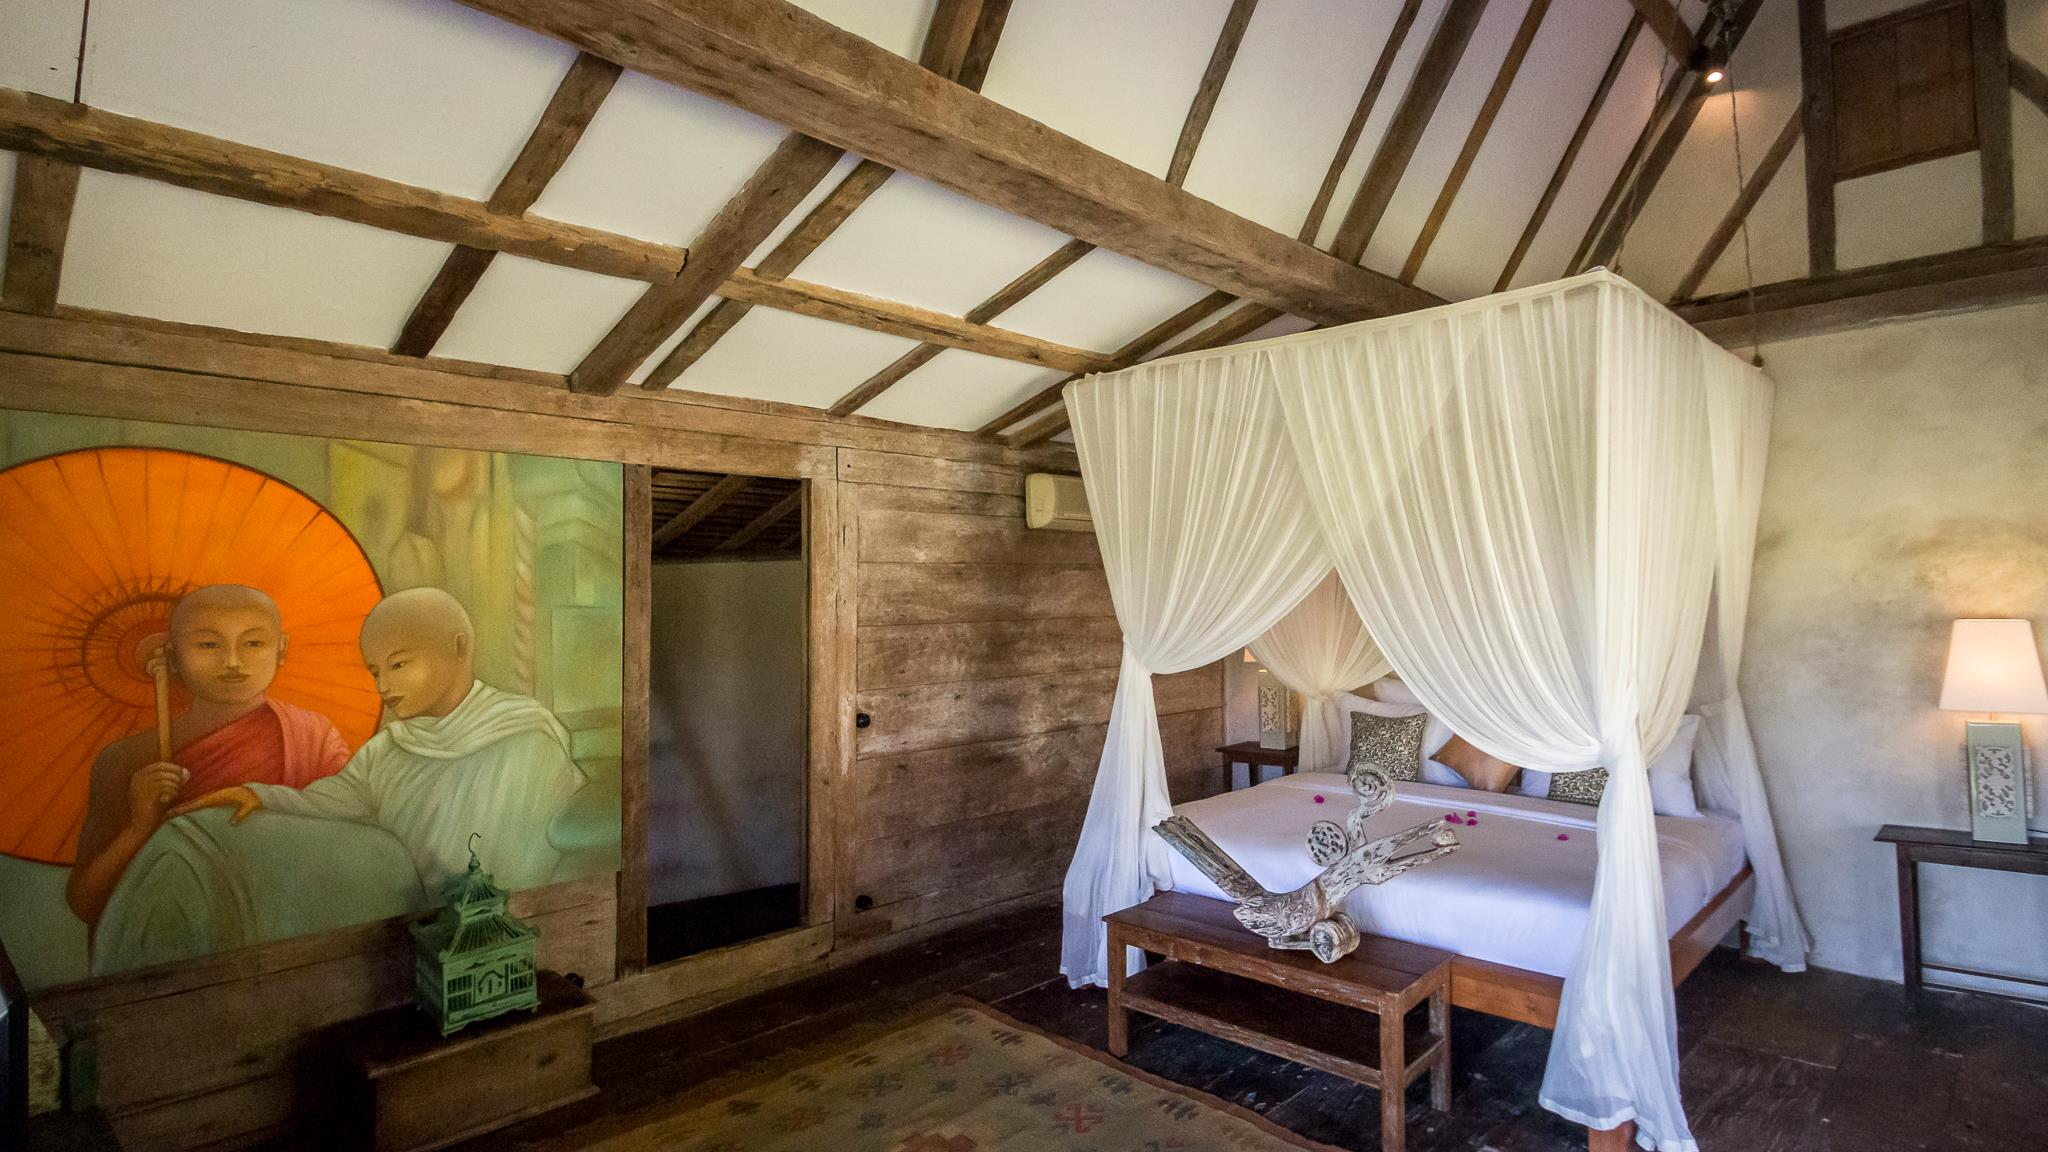 Bedroom with Wooden Floor - Villa Galante - Umalas, Bali